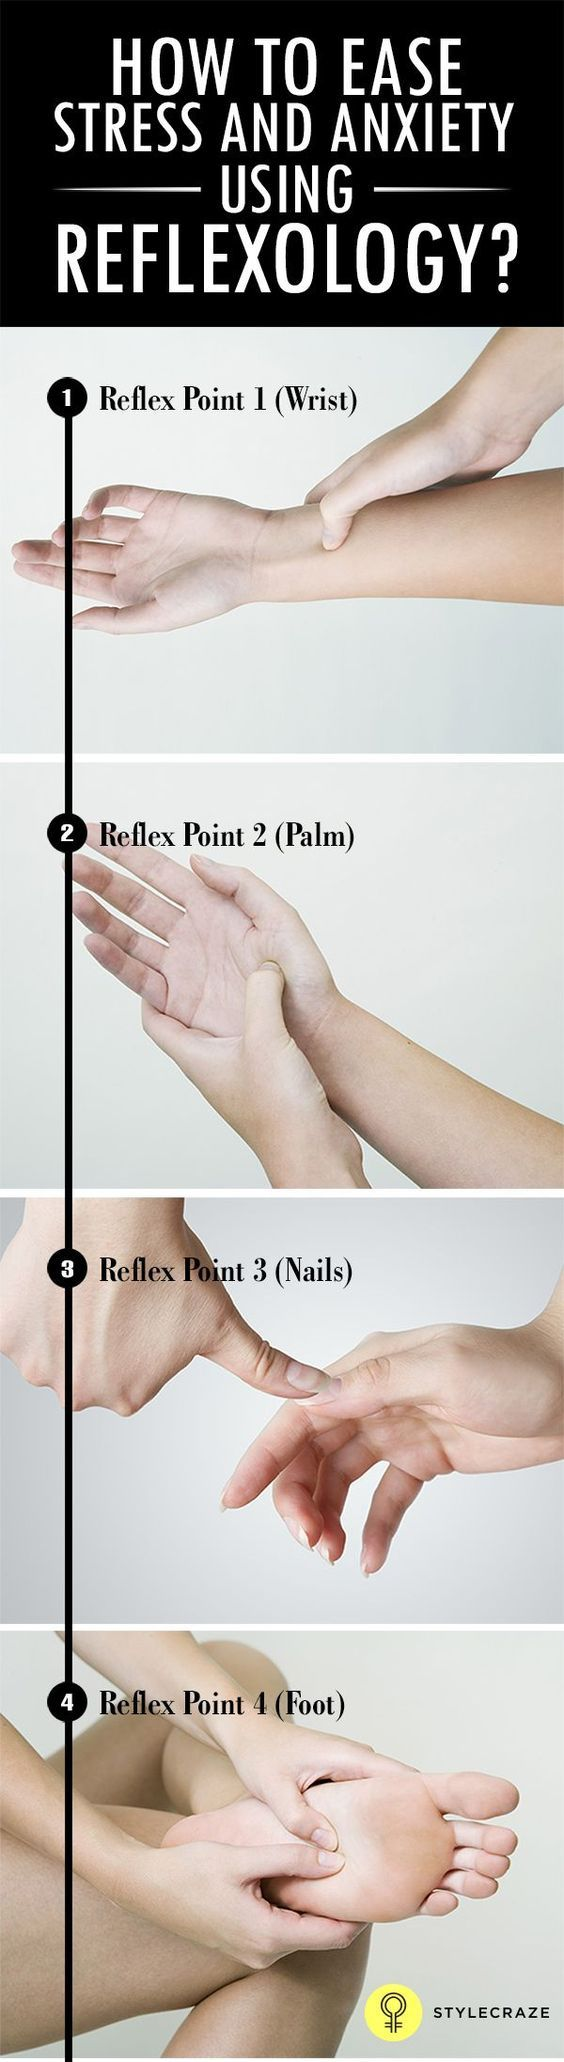 Reflexology is one of the easiest ways to beat stress and anxiety in today's fast-paced world.